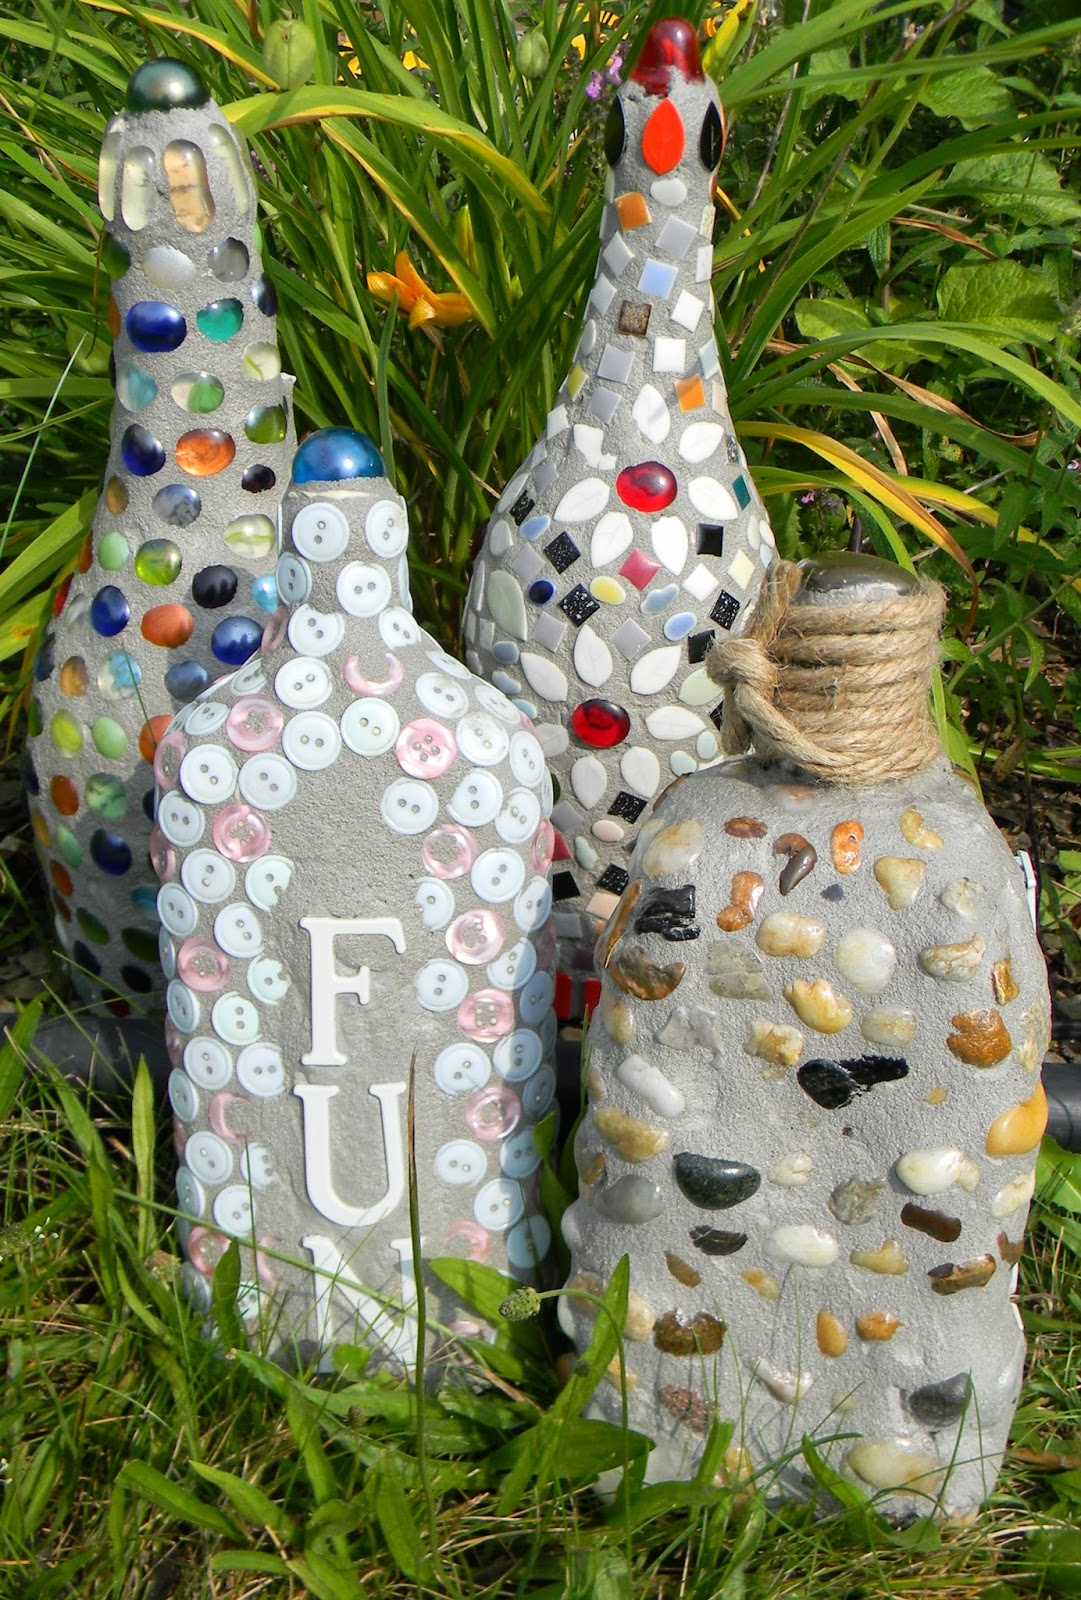 Artistic Endeavors 101 Recycled Materials Become Garden Decor